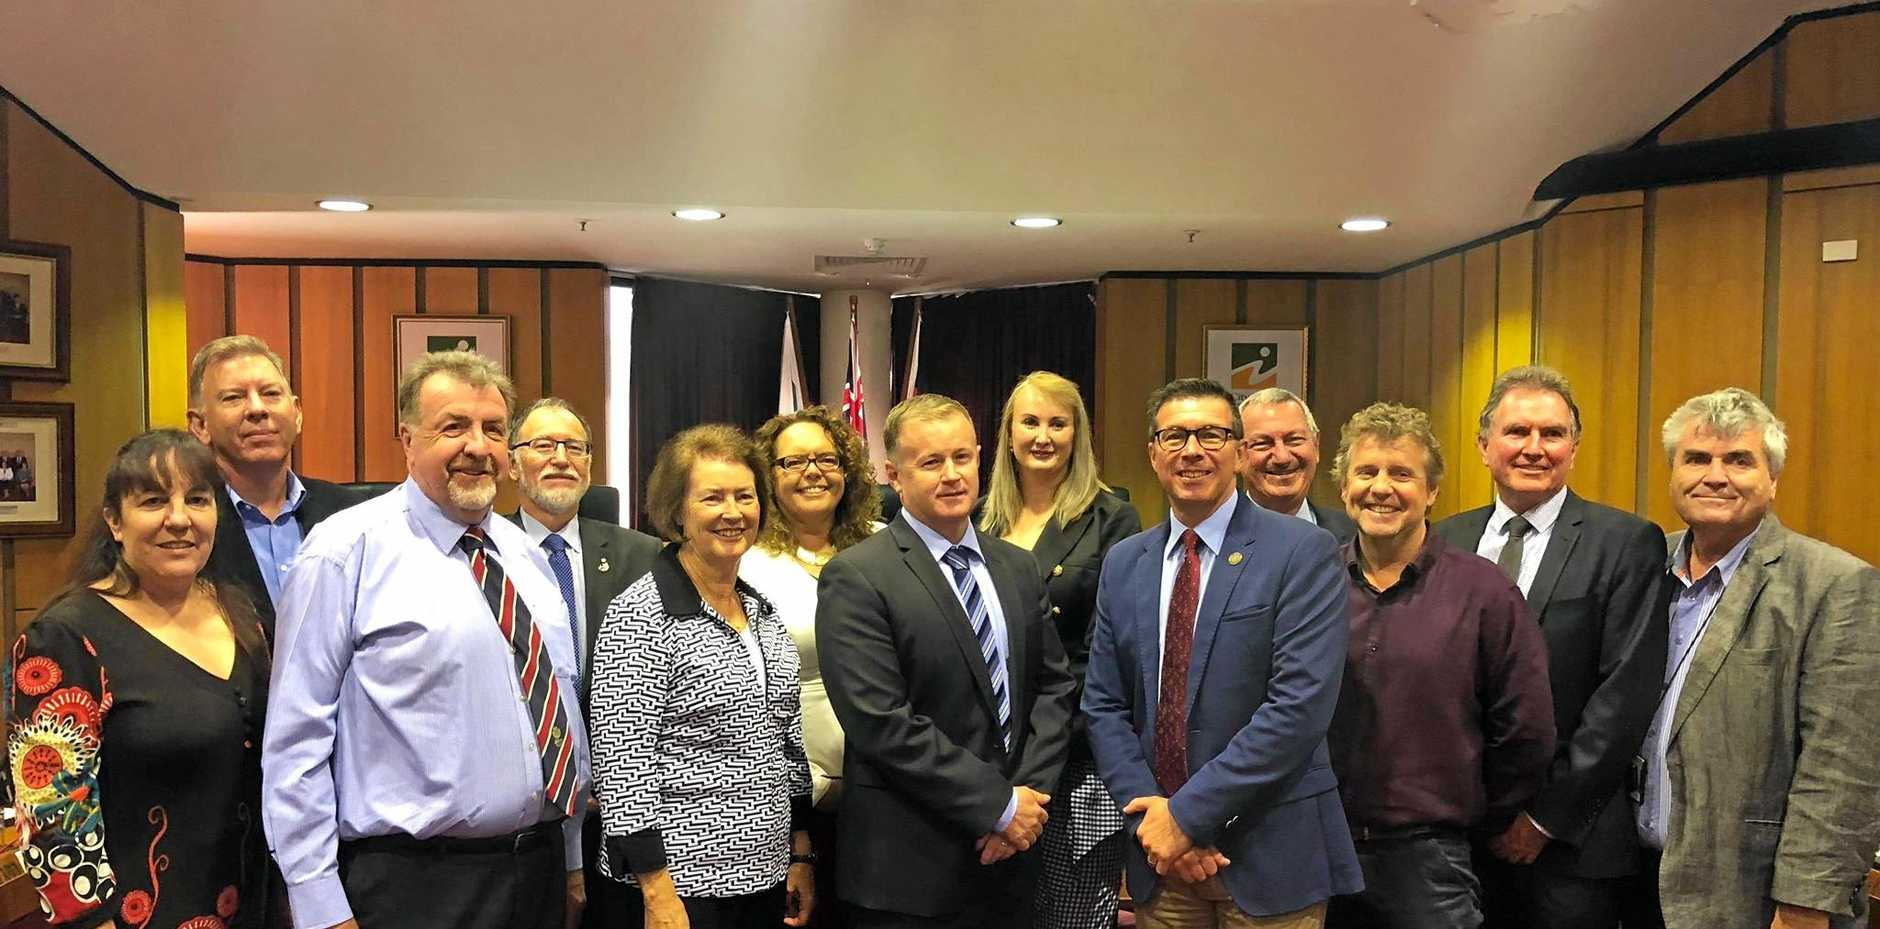 Former Ipswich councillors with then chief executive officer Sean Madigan and Gary Kellar.